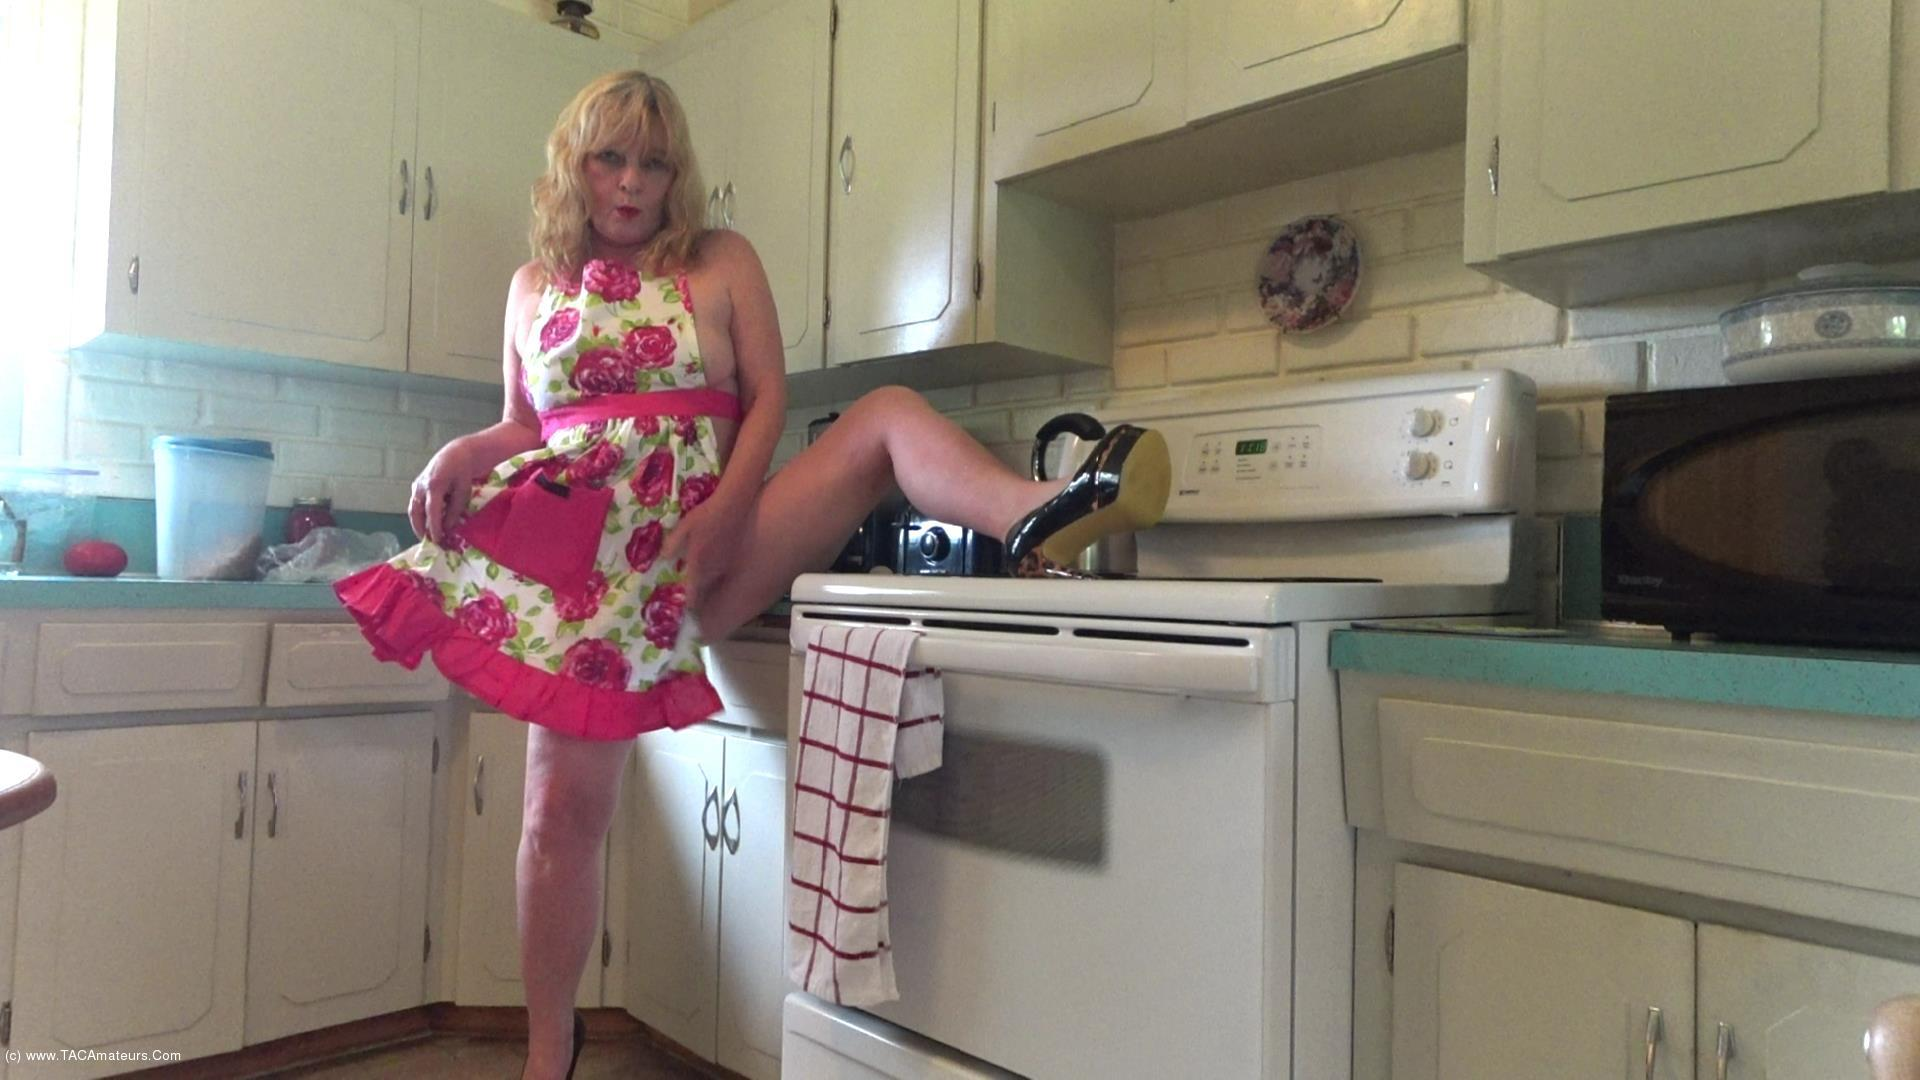 CougarBabeJolee - Naughty In My Hot Apron scene 2